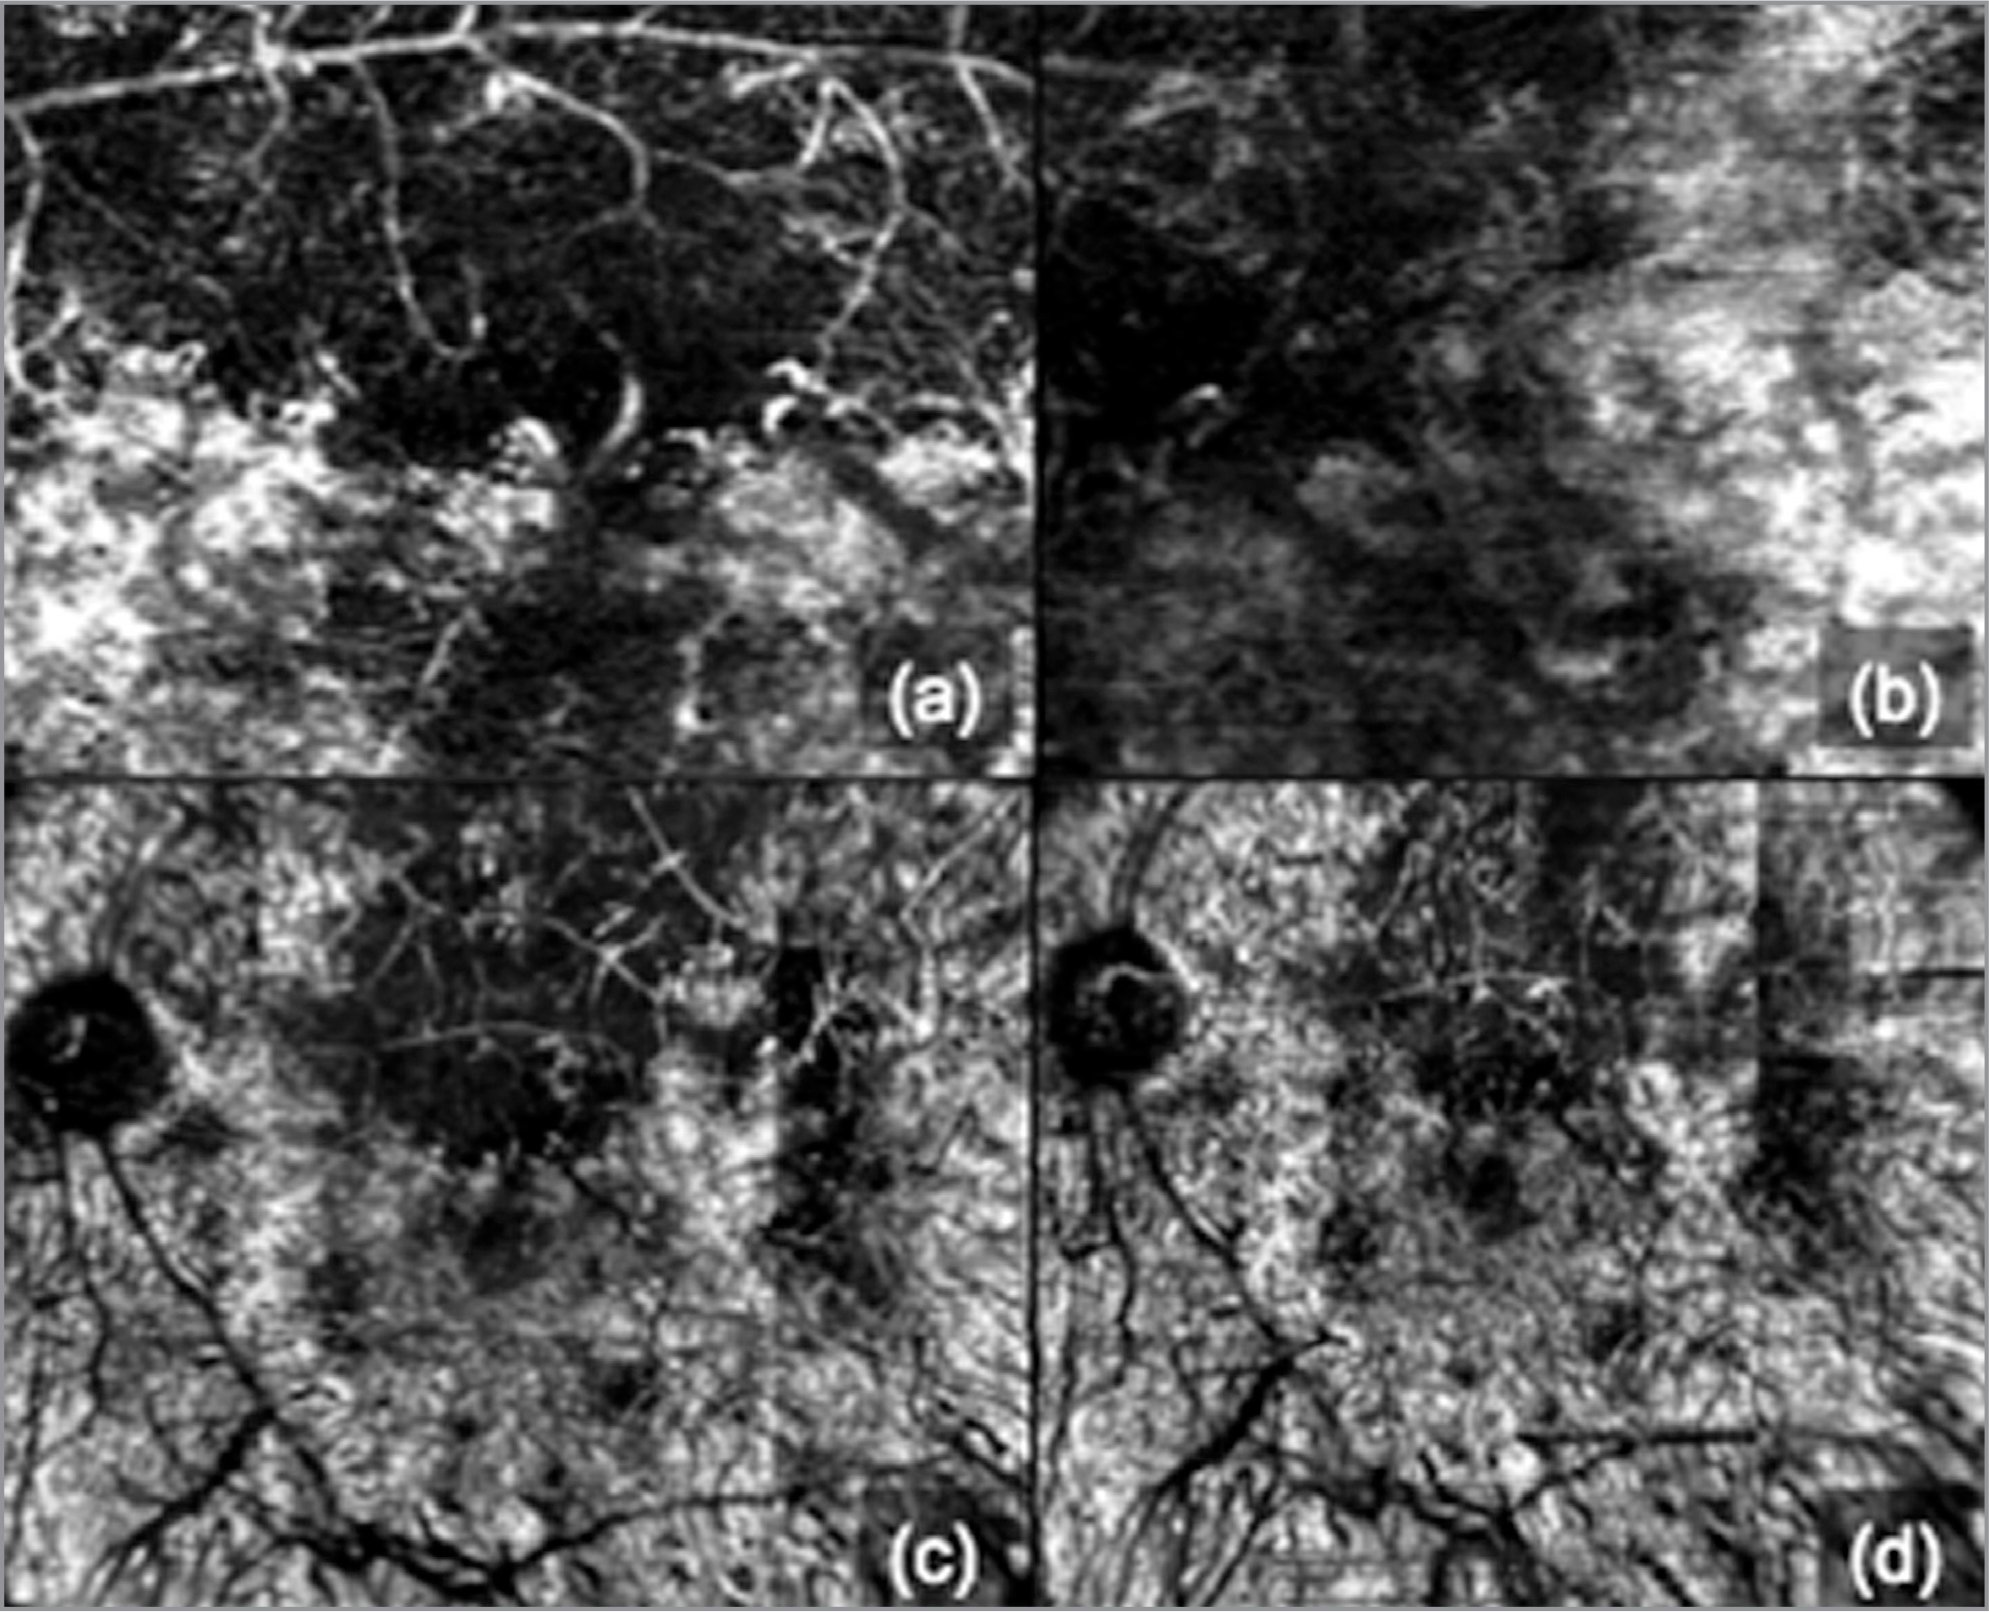 (a) En face optical coherence tomography angiography (OCTA) image encompassing 3 mm × 3 mm area (10° × 10° field of view) showing a large area of flow void with few unmasked medium and large sized choriocapillaris. (b) En face OCTA image encompassing 3 mm × 3 mm area (10° × 10° field of view) of same subject in healing phase at the level of retinal pigment epithelium-Bruch's membrane showing a decreased area of large area of flow void with unmasked medium and large sized choriocapillaris. (c) Panoramic OCTA en face image of the choriocapillaris layer encompassing 12 mm × 9 mm area (40° × 30°) with similar resolution as of 3 mm × 3 mm cube (corresponding to image a) showing the large flow void areas or areas of decreased decorrelation signal with few unmasked medium and large sized choriocapillaris. (d) Panoramic OCTA en face image of the choriocapillaris layer encompassing 12 mm × 9 mm area (40° × 30°) with similar resolution as of 3 mm × 3 mm cube (corresponding to image b) showing a marked decrease / reduction in large flow void areas or areas of decreased de-correlation signal and unmasking of middle and large choriocapillaris architecture due to reperfusion of choriocapillaris.